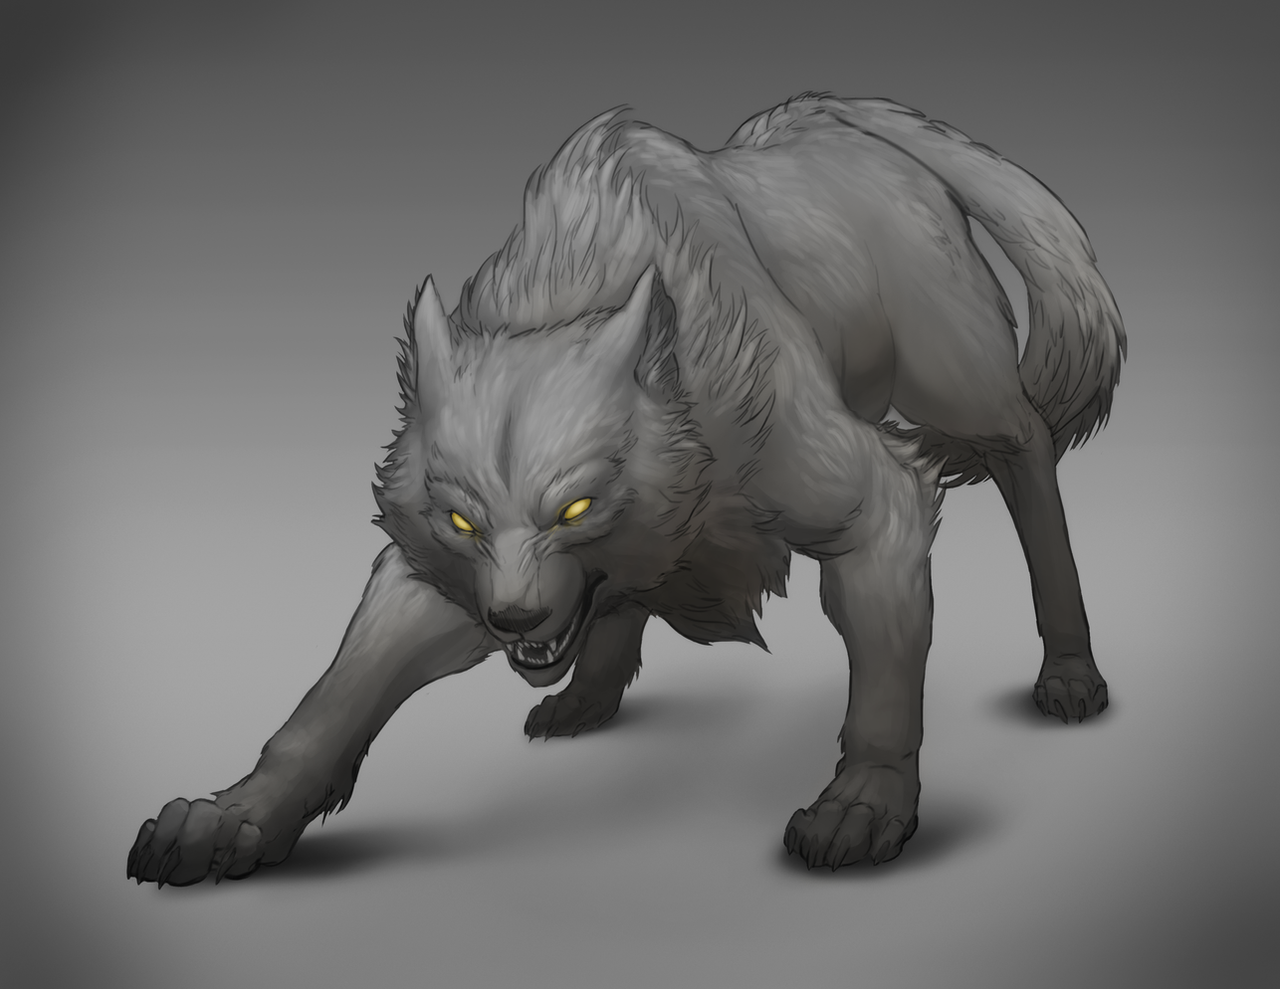 Bigby Wolf - Full Wolf Form by cweinmanart on DeviantArt